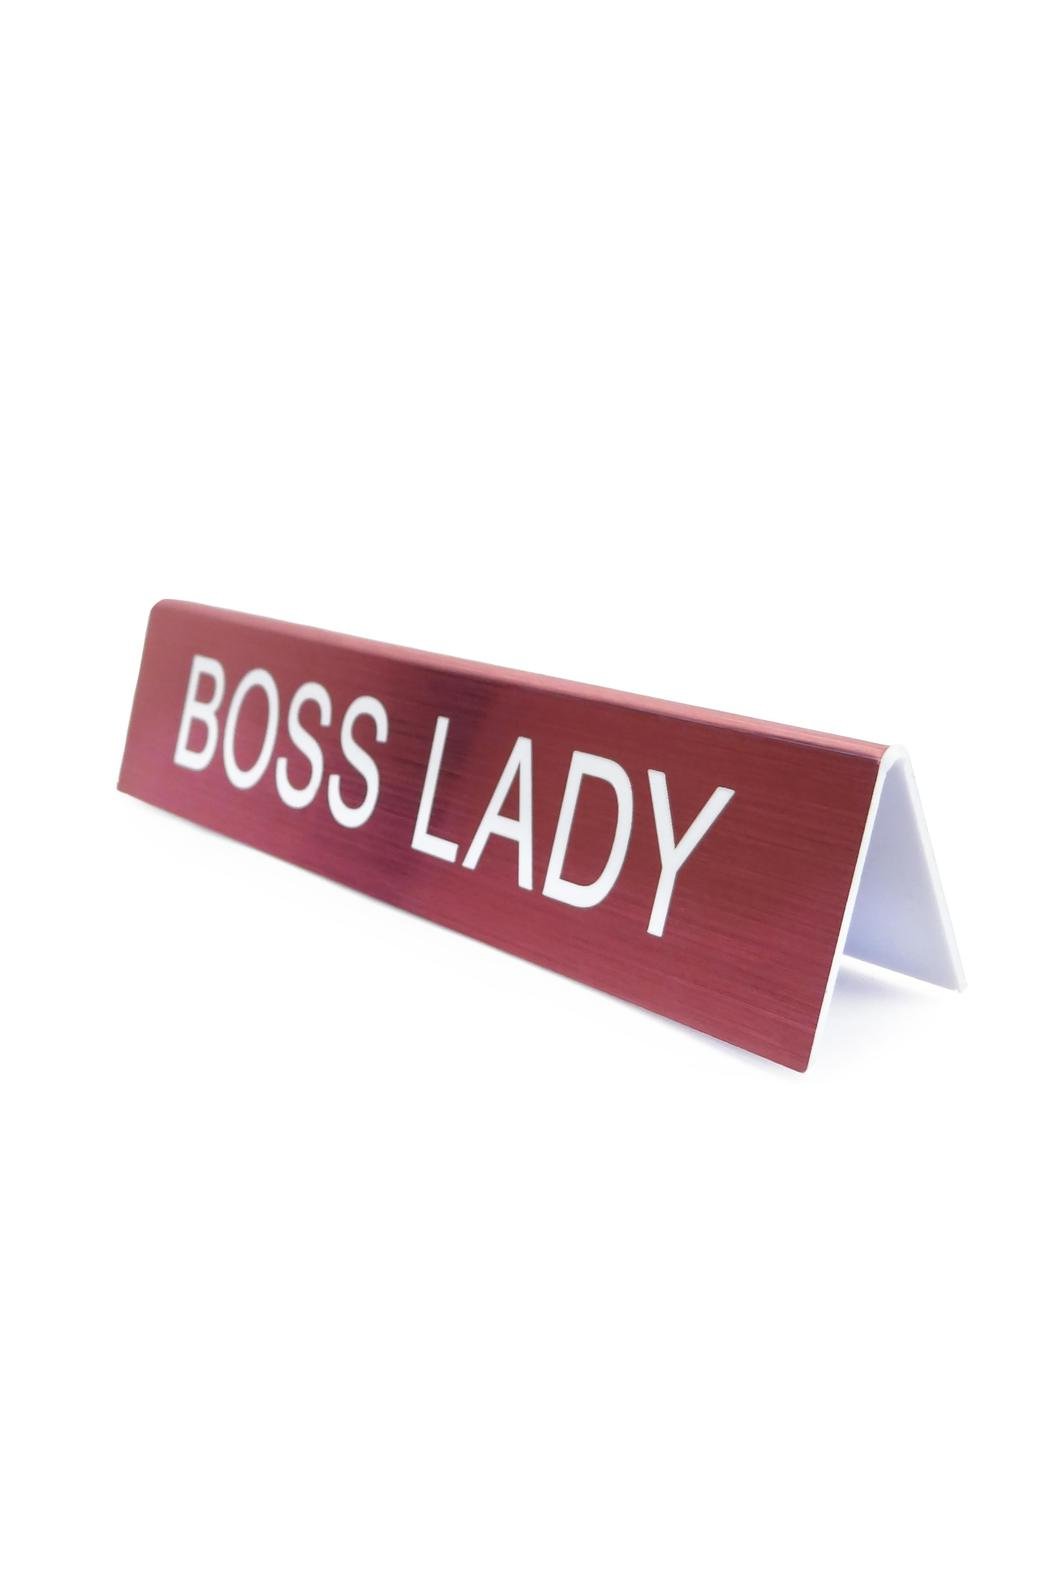 About Face Designs Boss Lady Sign - Main Image